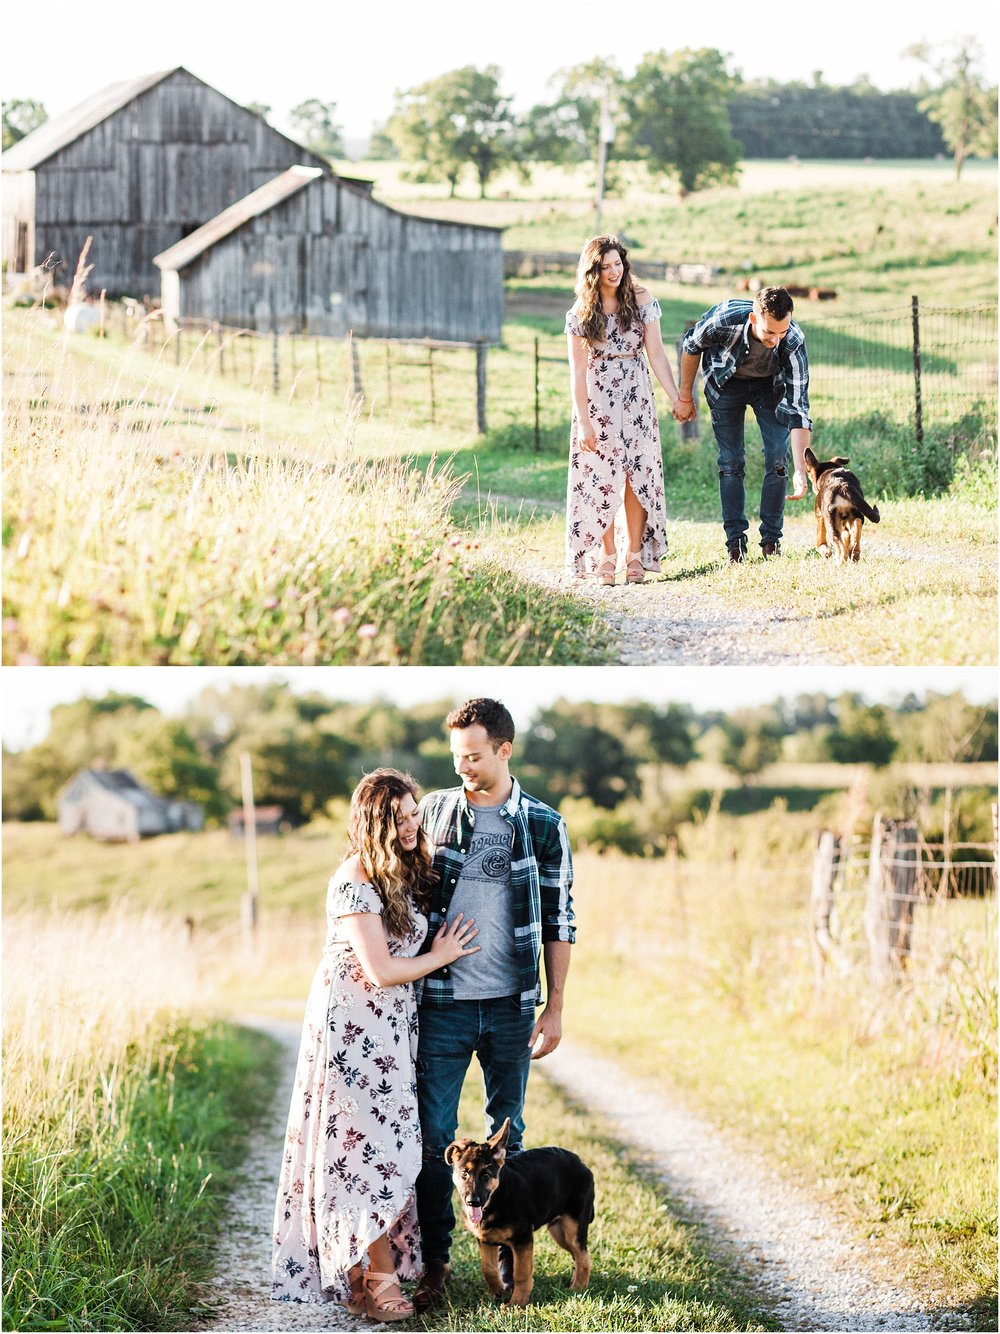 www.emilymoseley.com | Lexington KY wedding photographer_0005.jpg